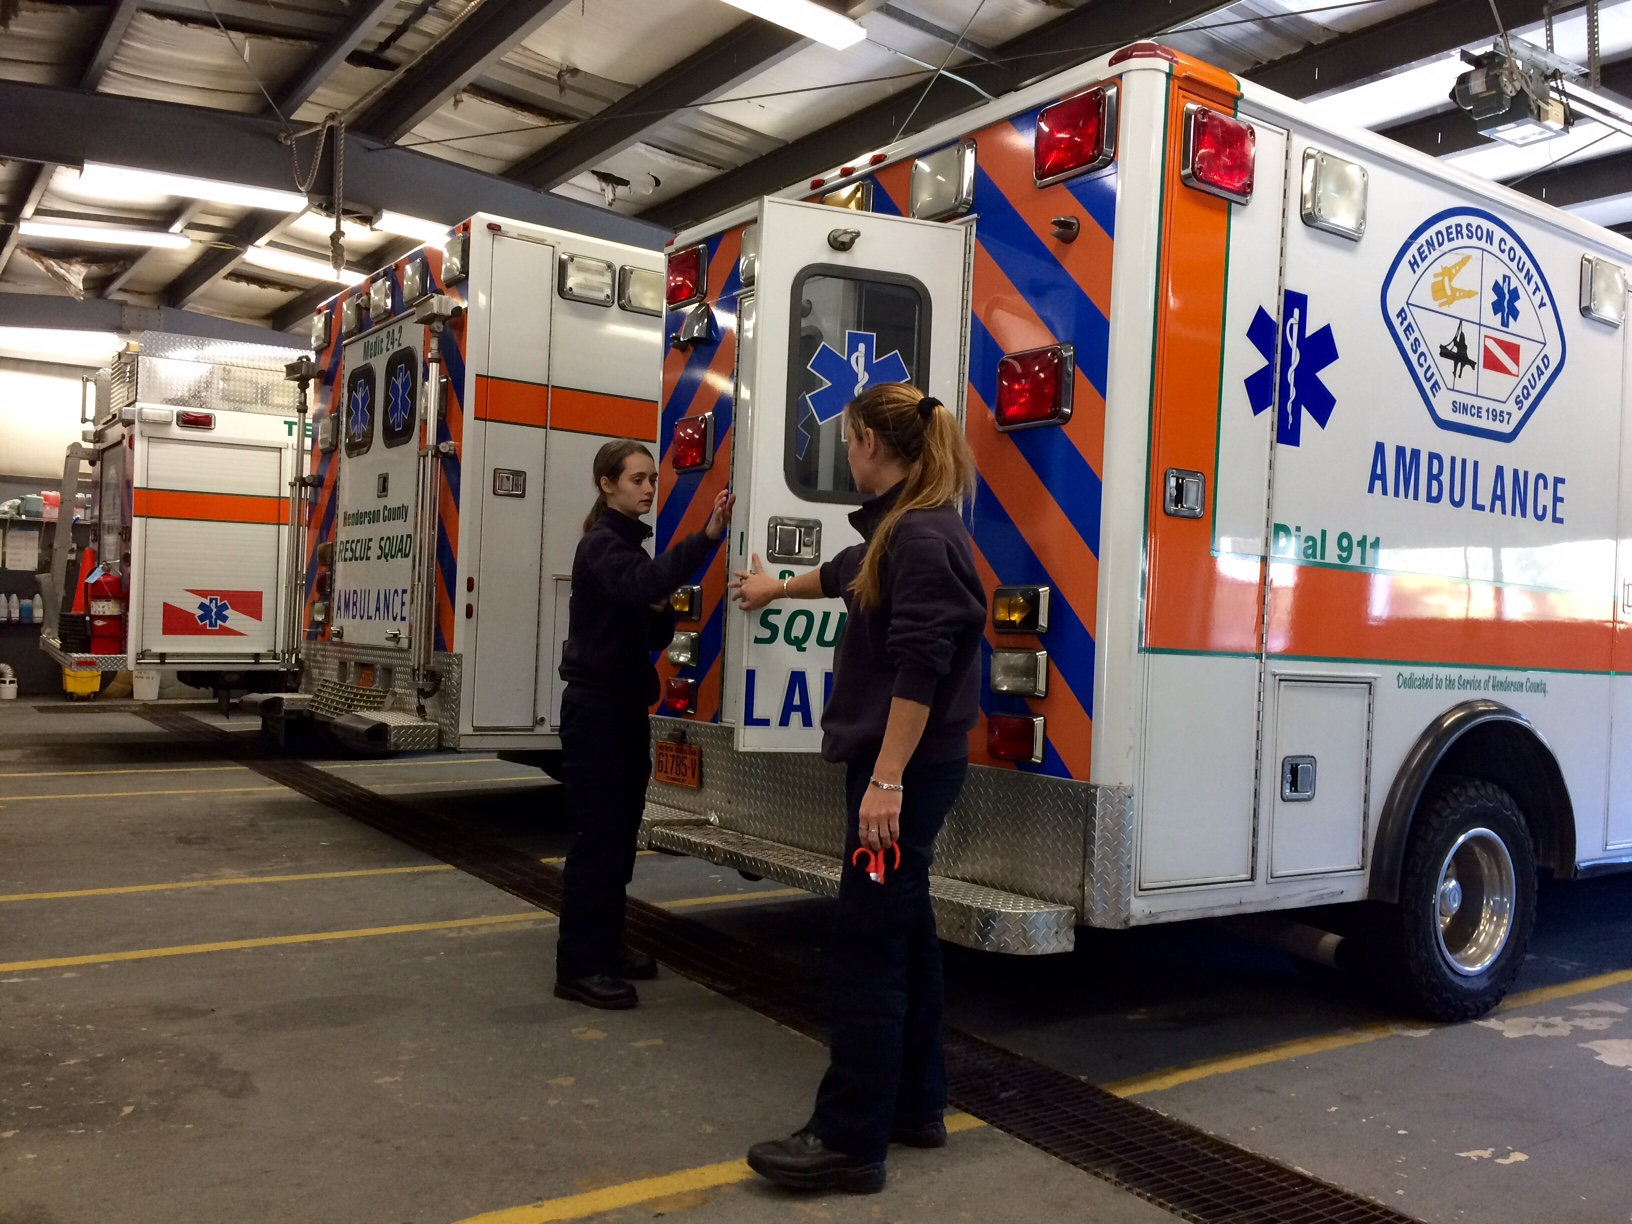 Being a part of the team takes a lot of training - almost 200 hours to become an emergency medical technician. But even volunteers can jump in through training on Monday nights. (Photo Credit: WLOS Staff).